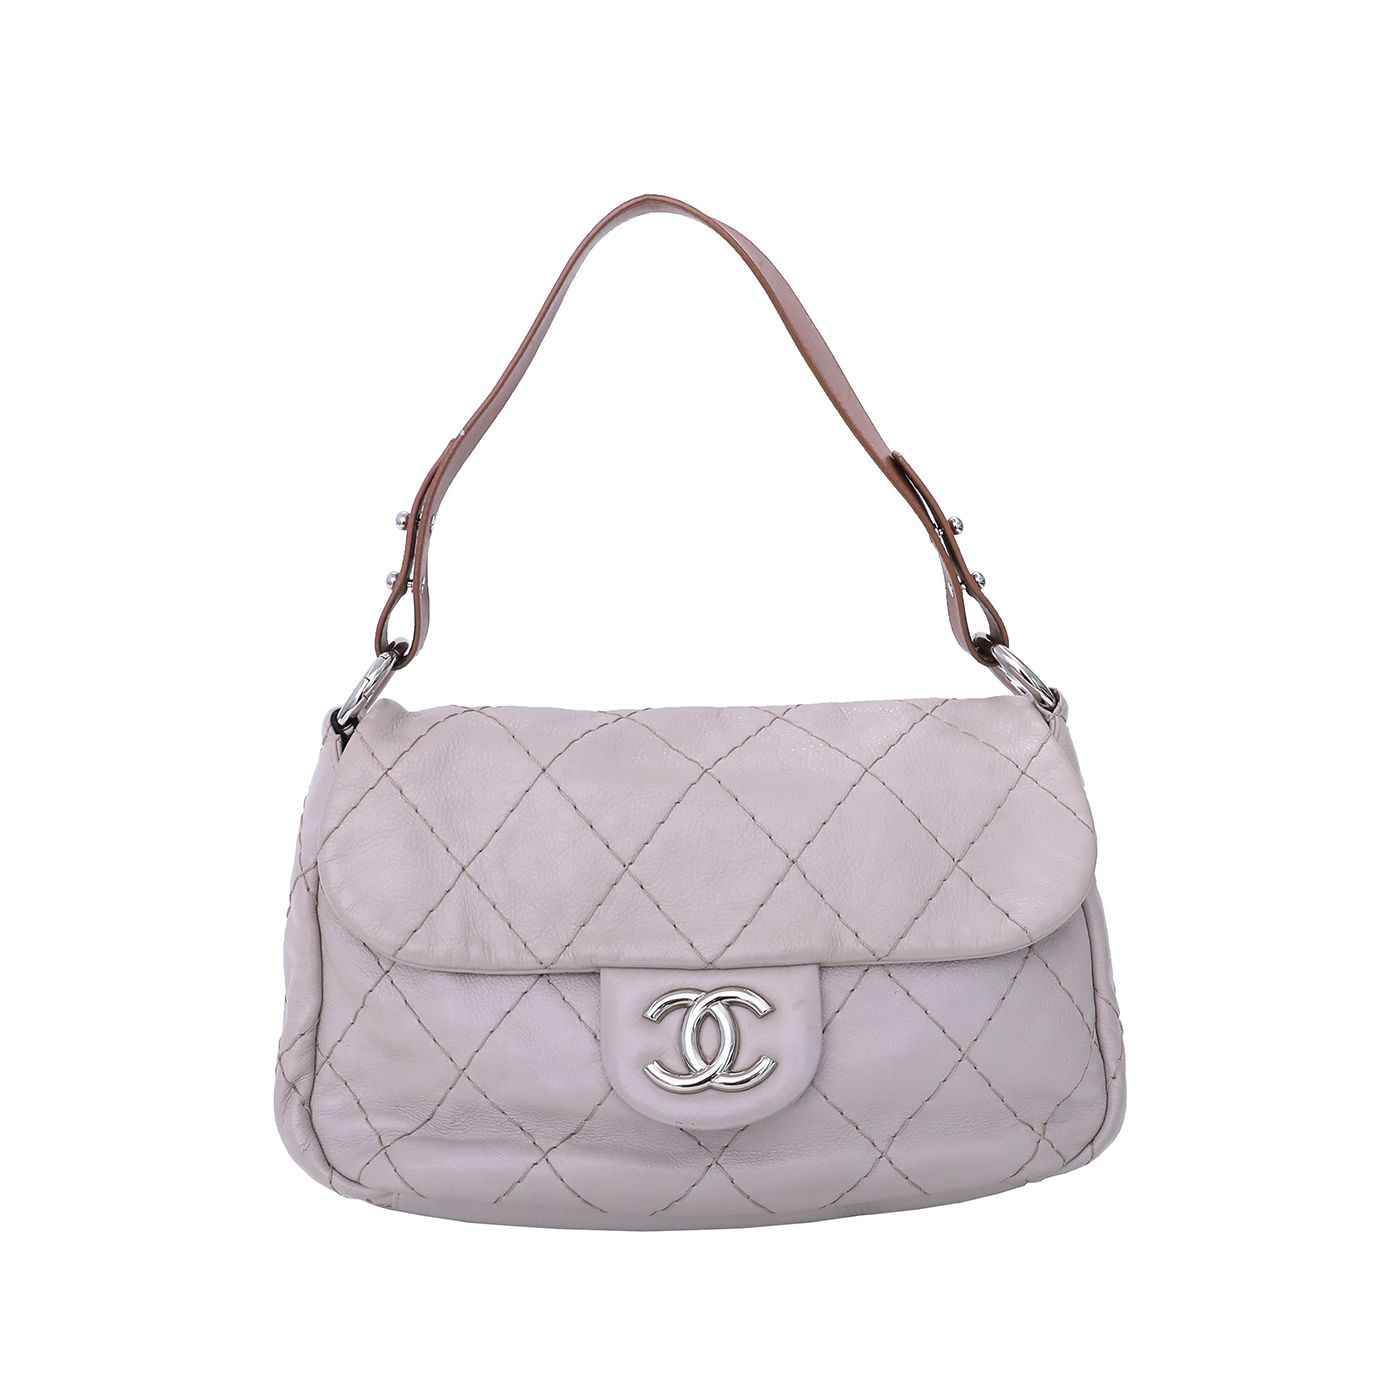 Chanel Bicolor On The Road Flap Bag